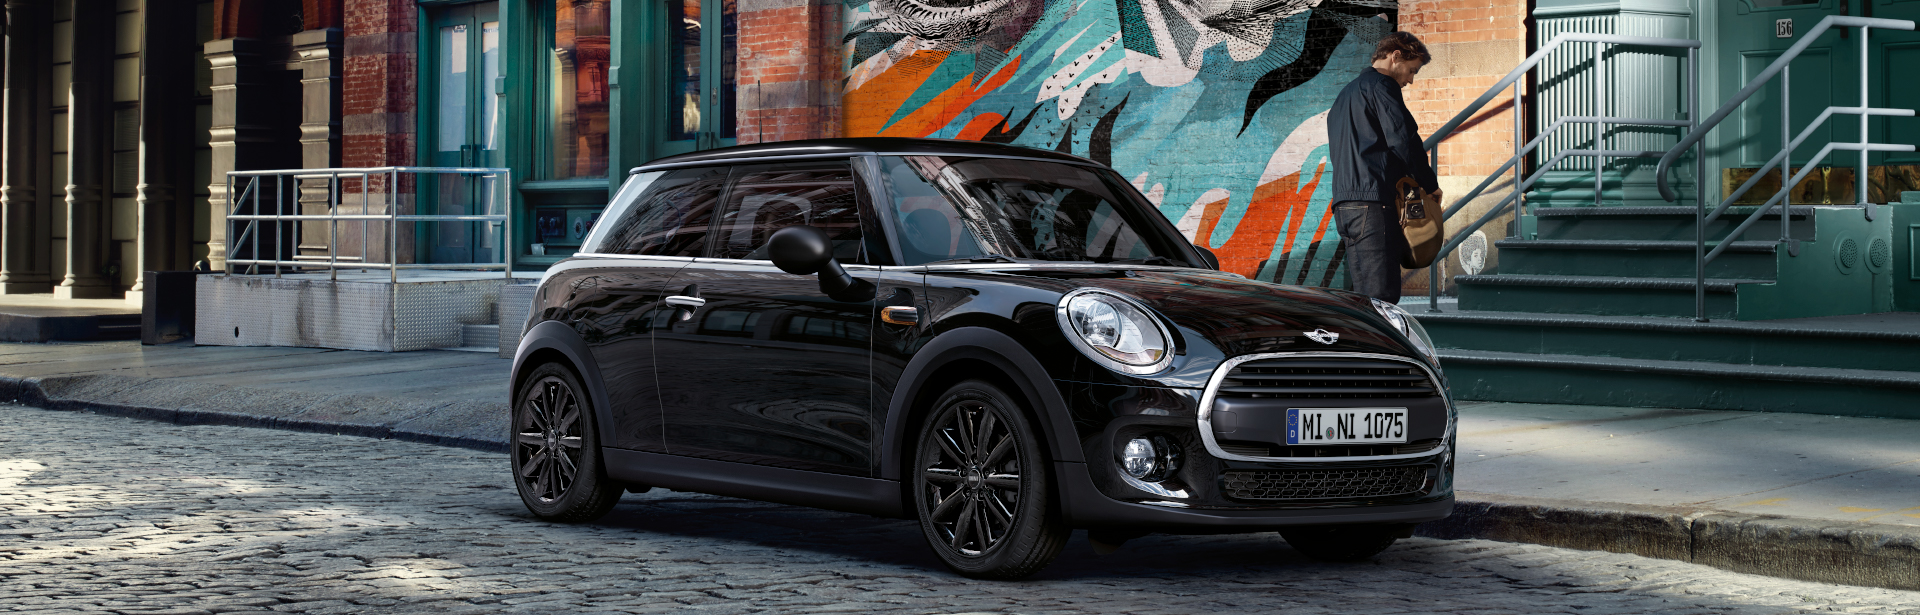 MINI One 3-Türer Sondermodell Blackyard